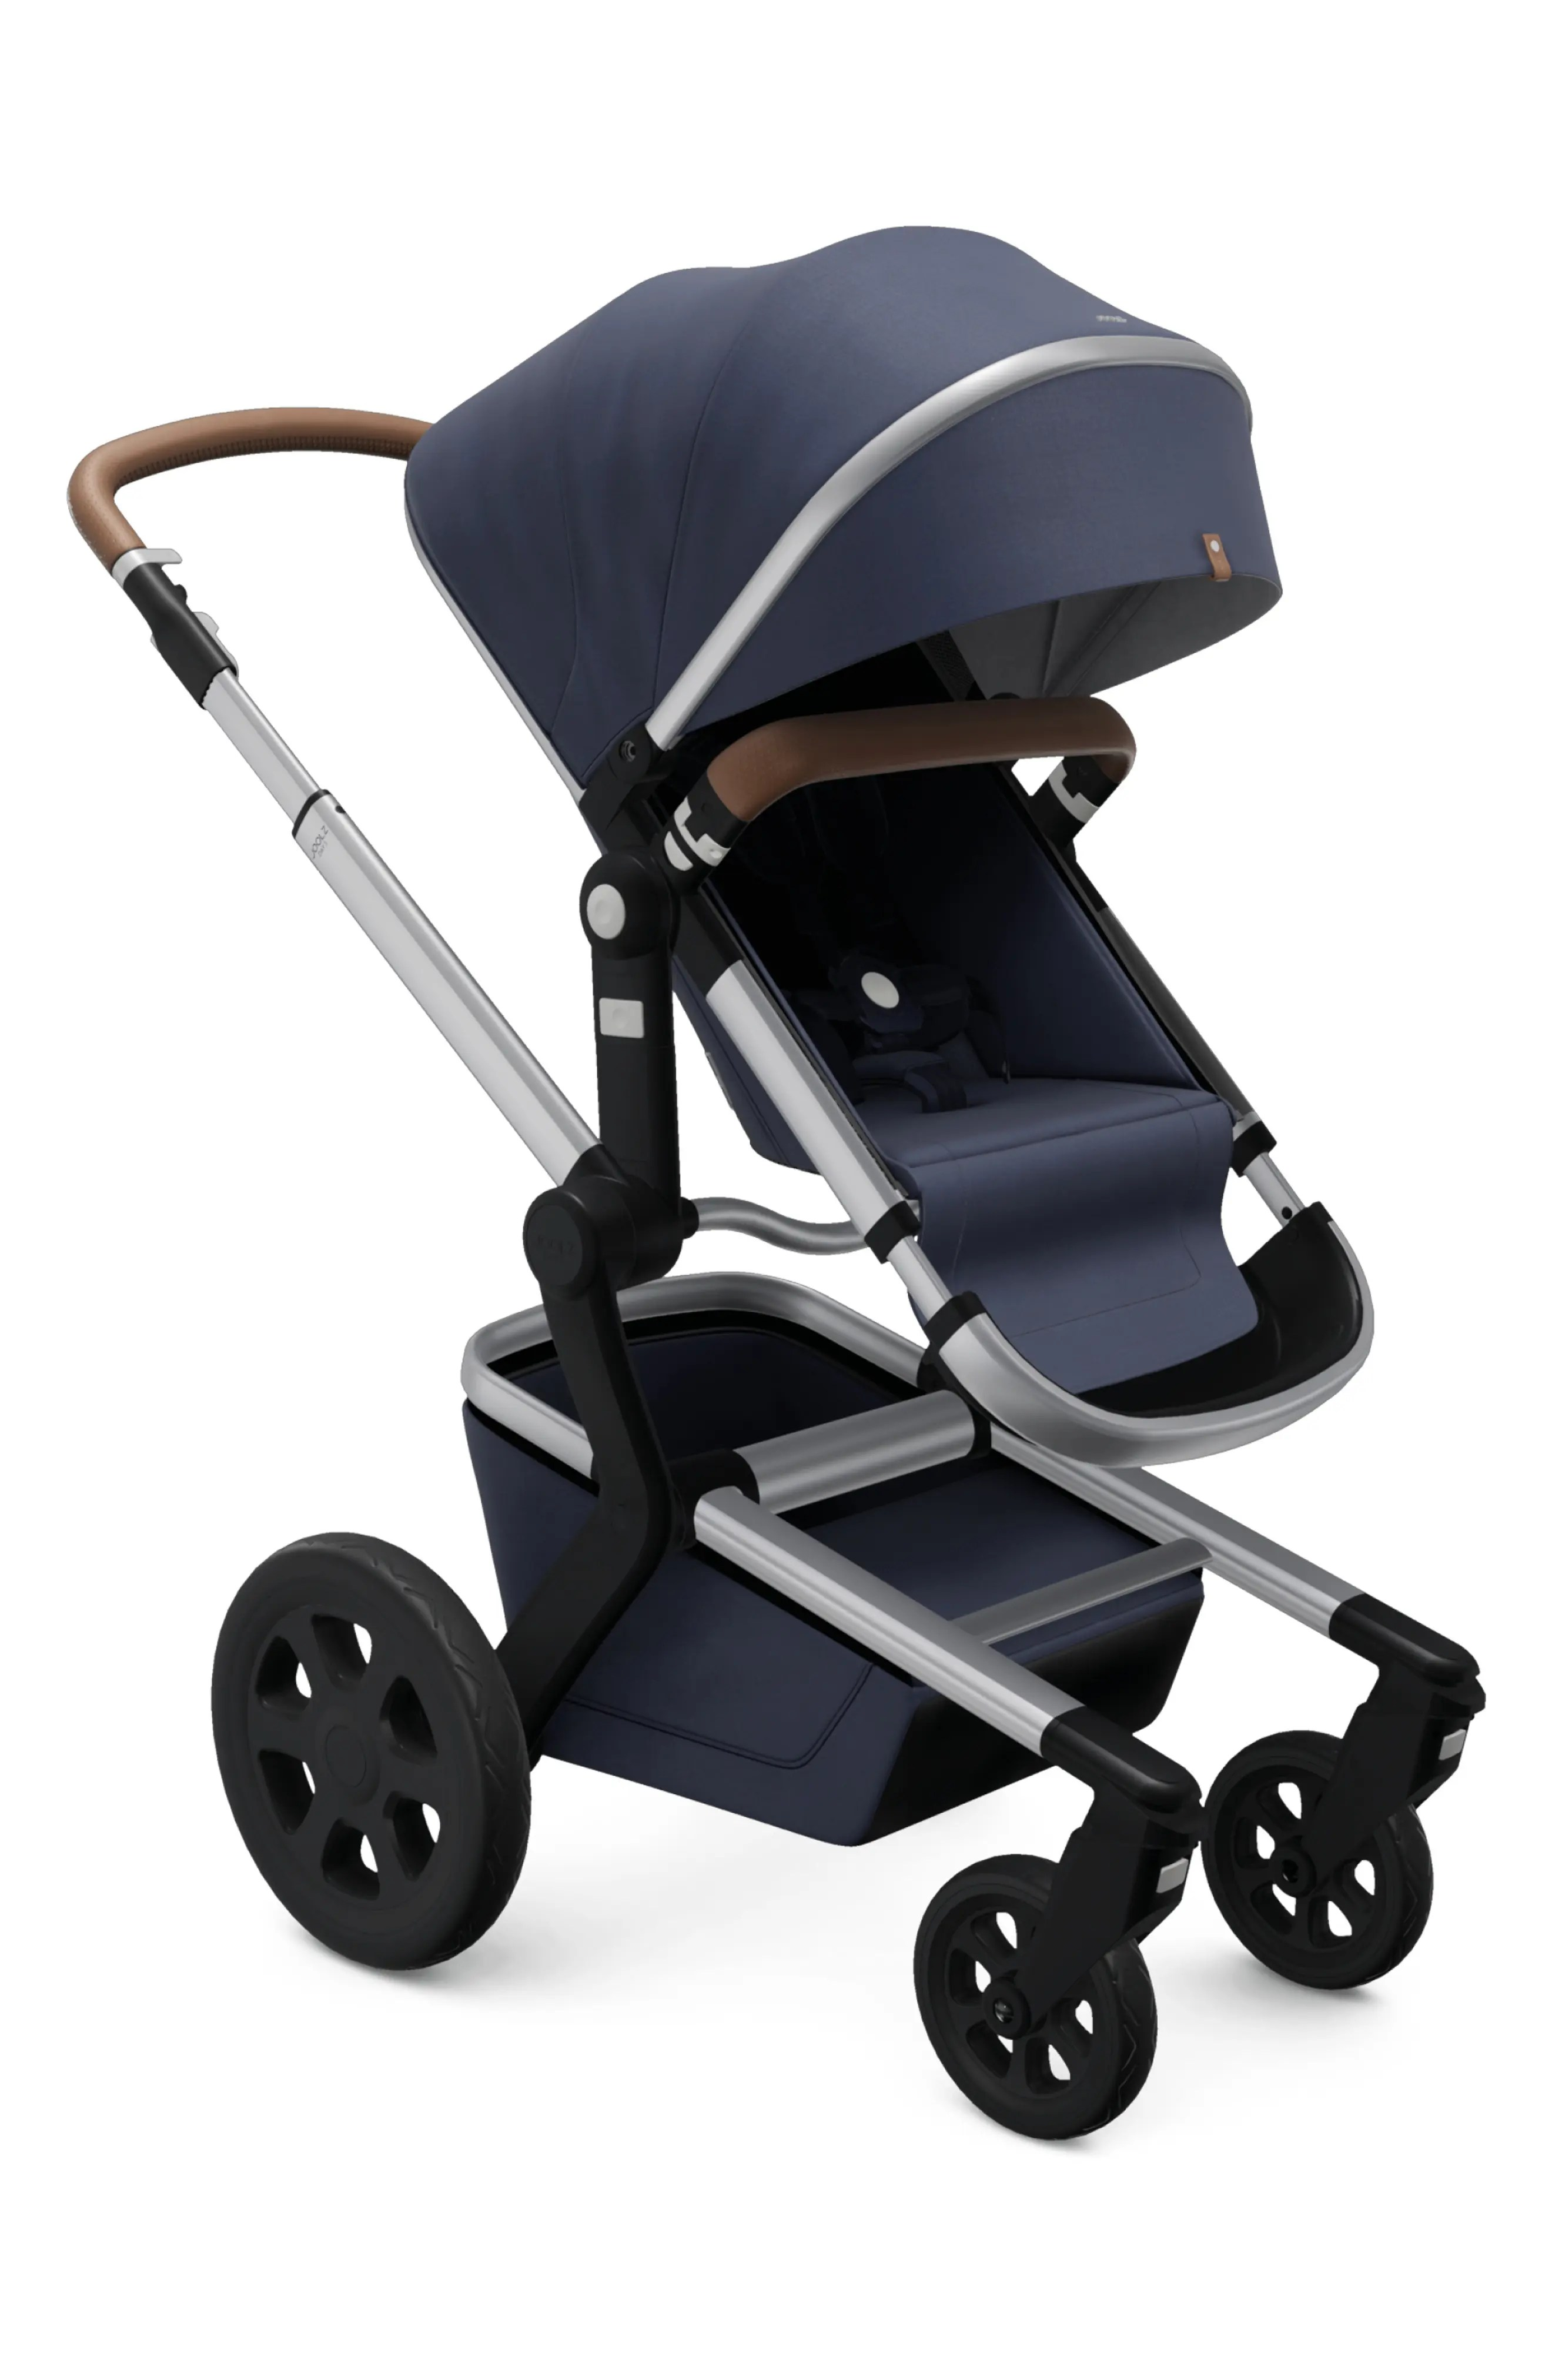 Joolz Stroller Amazon Best Uk Baby Travel System Pushchairs 2020 And Where To Buy